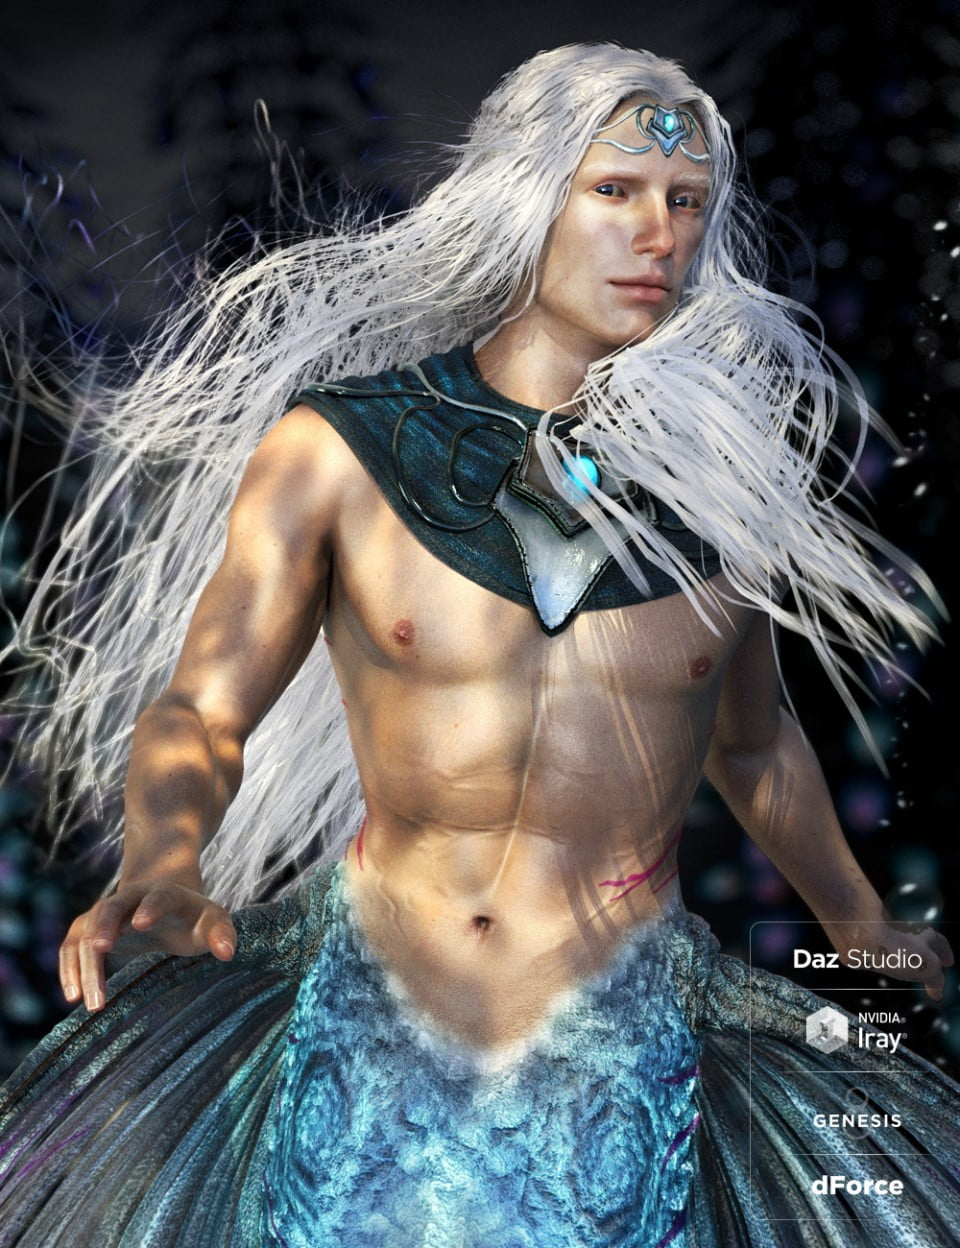 Alascanus Hair for Genesis 8 Male(s) with dForce